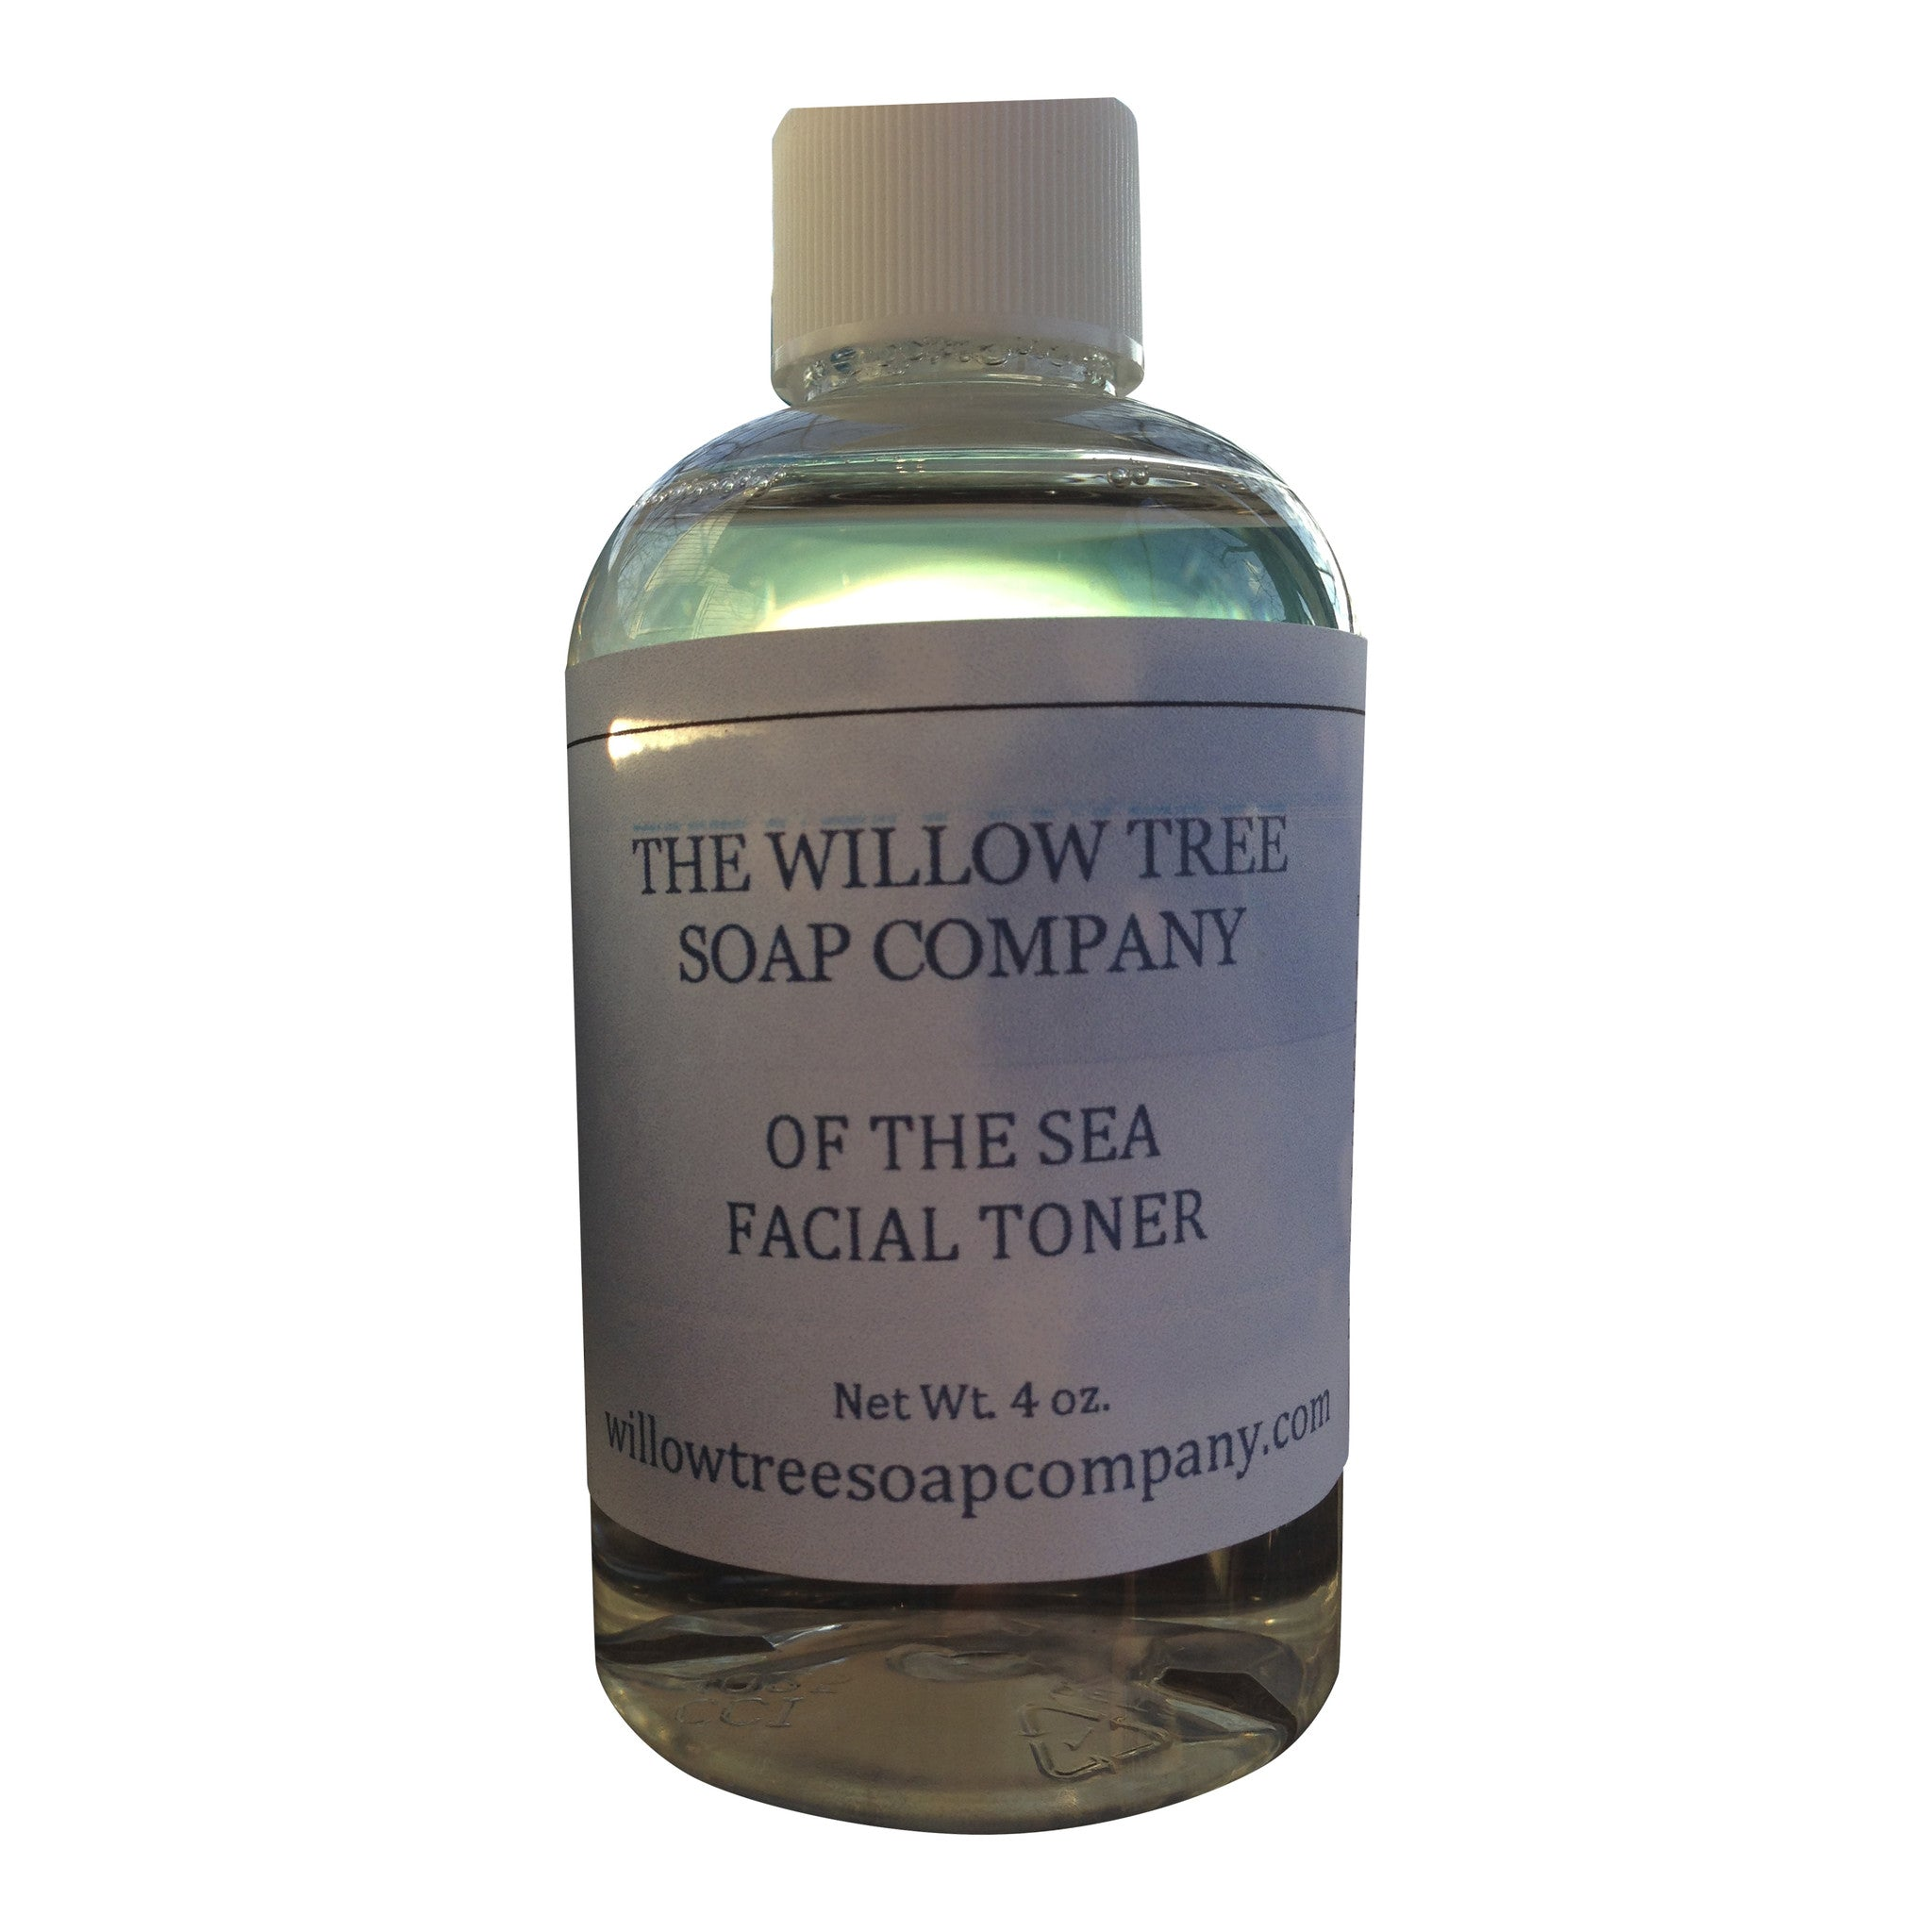 Of The Sea Facial Toner